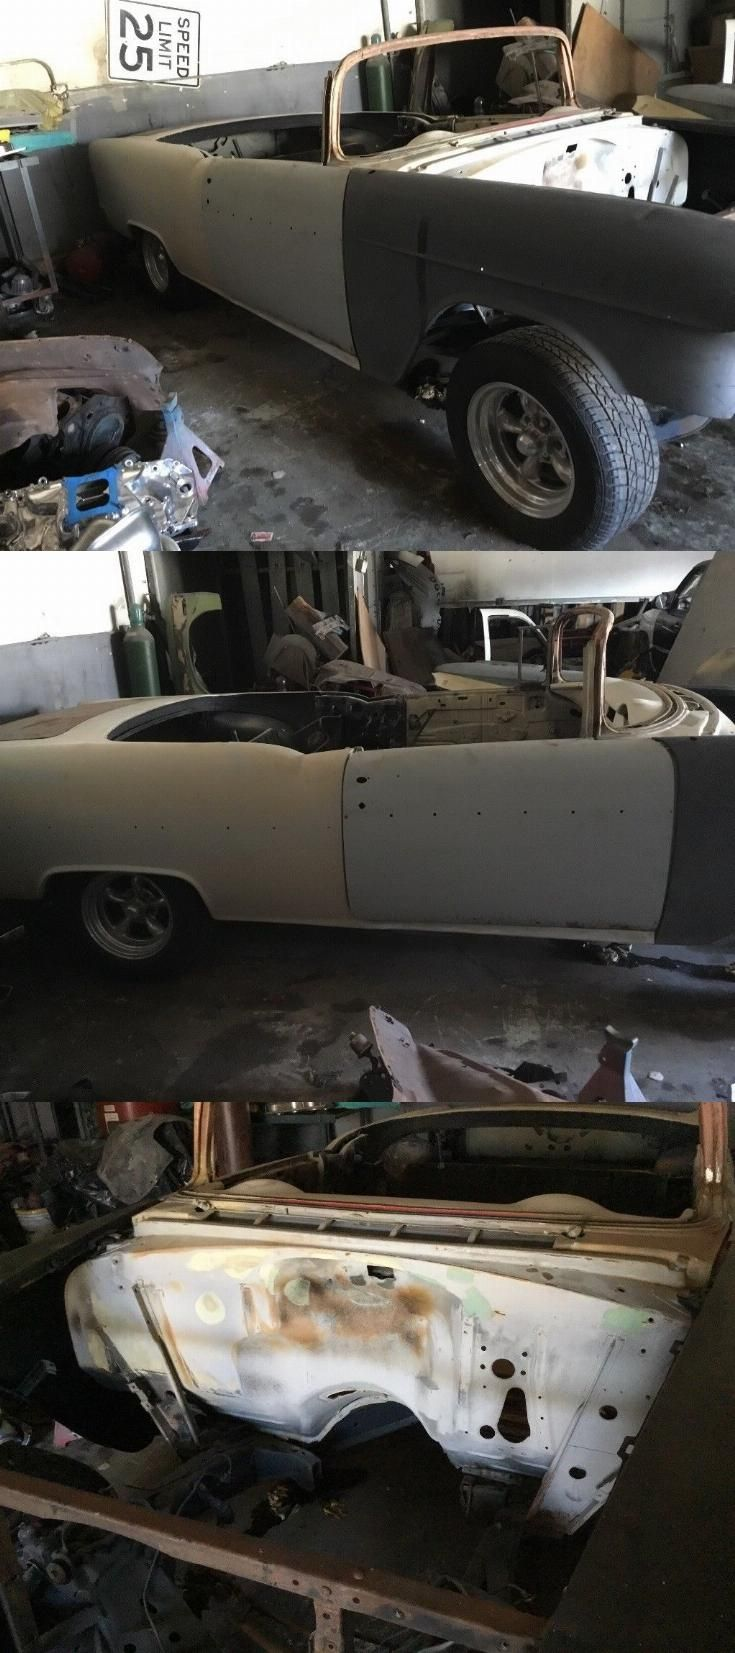 1955 Thunderbird Project For Sale For sale in 2424 S